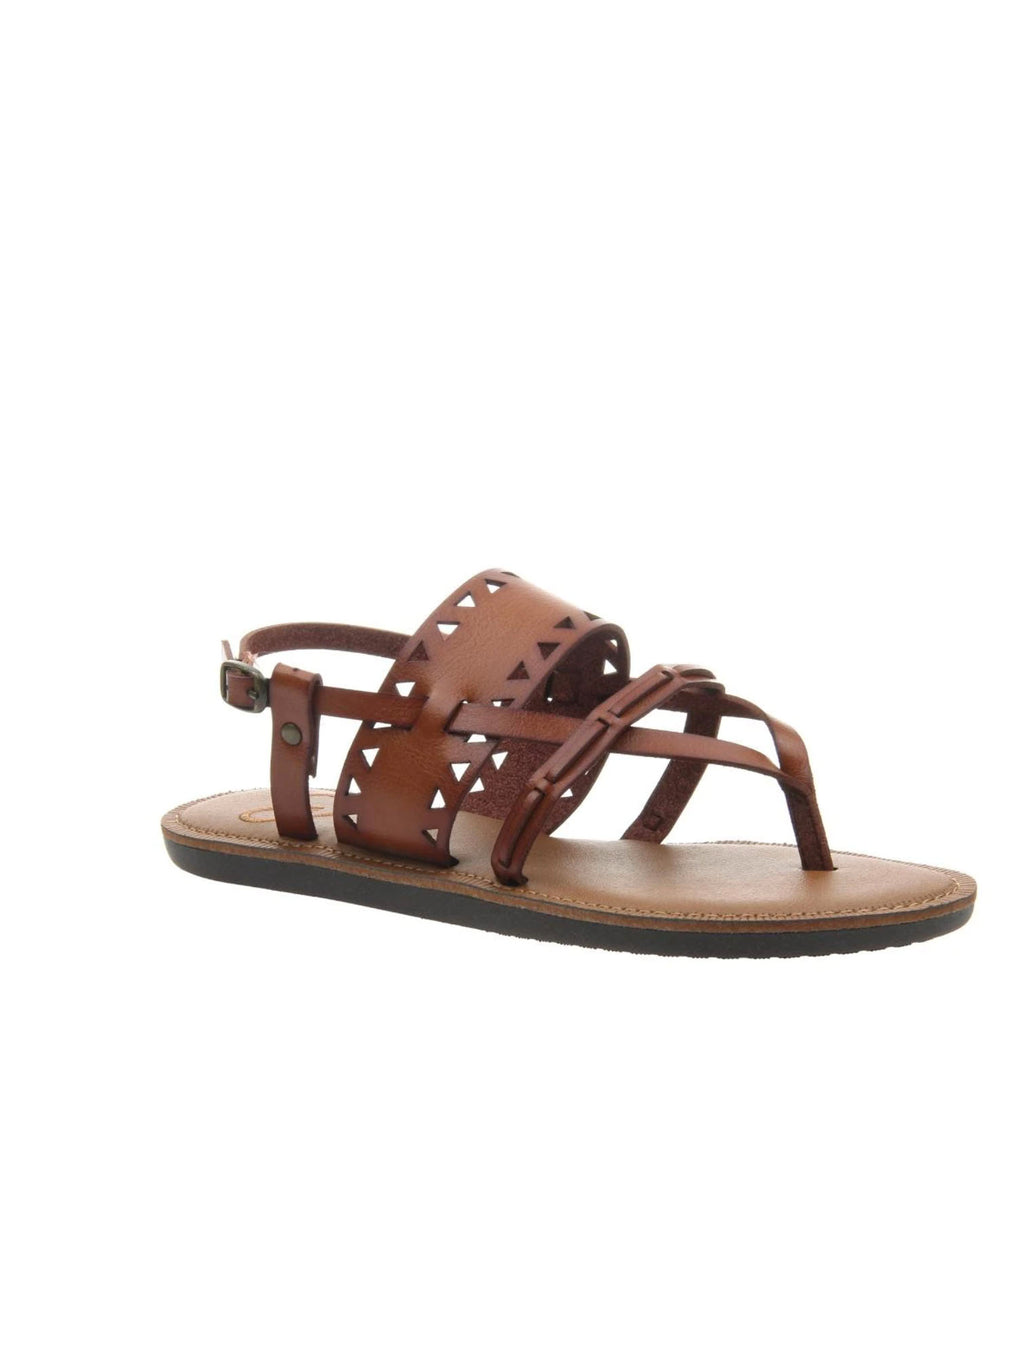 Madeline Girl Bon Bon Flat Sandal in Brown Sugar